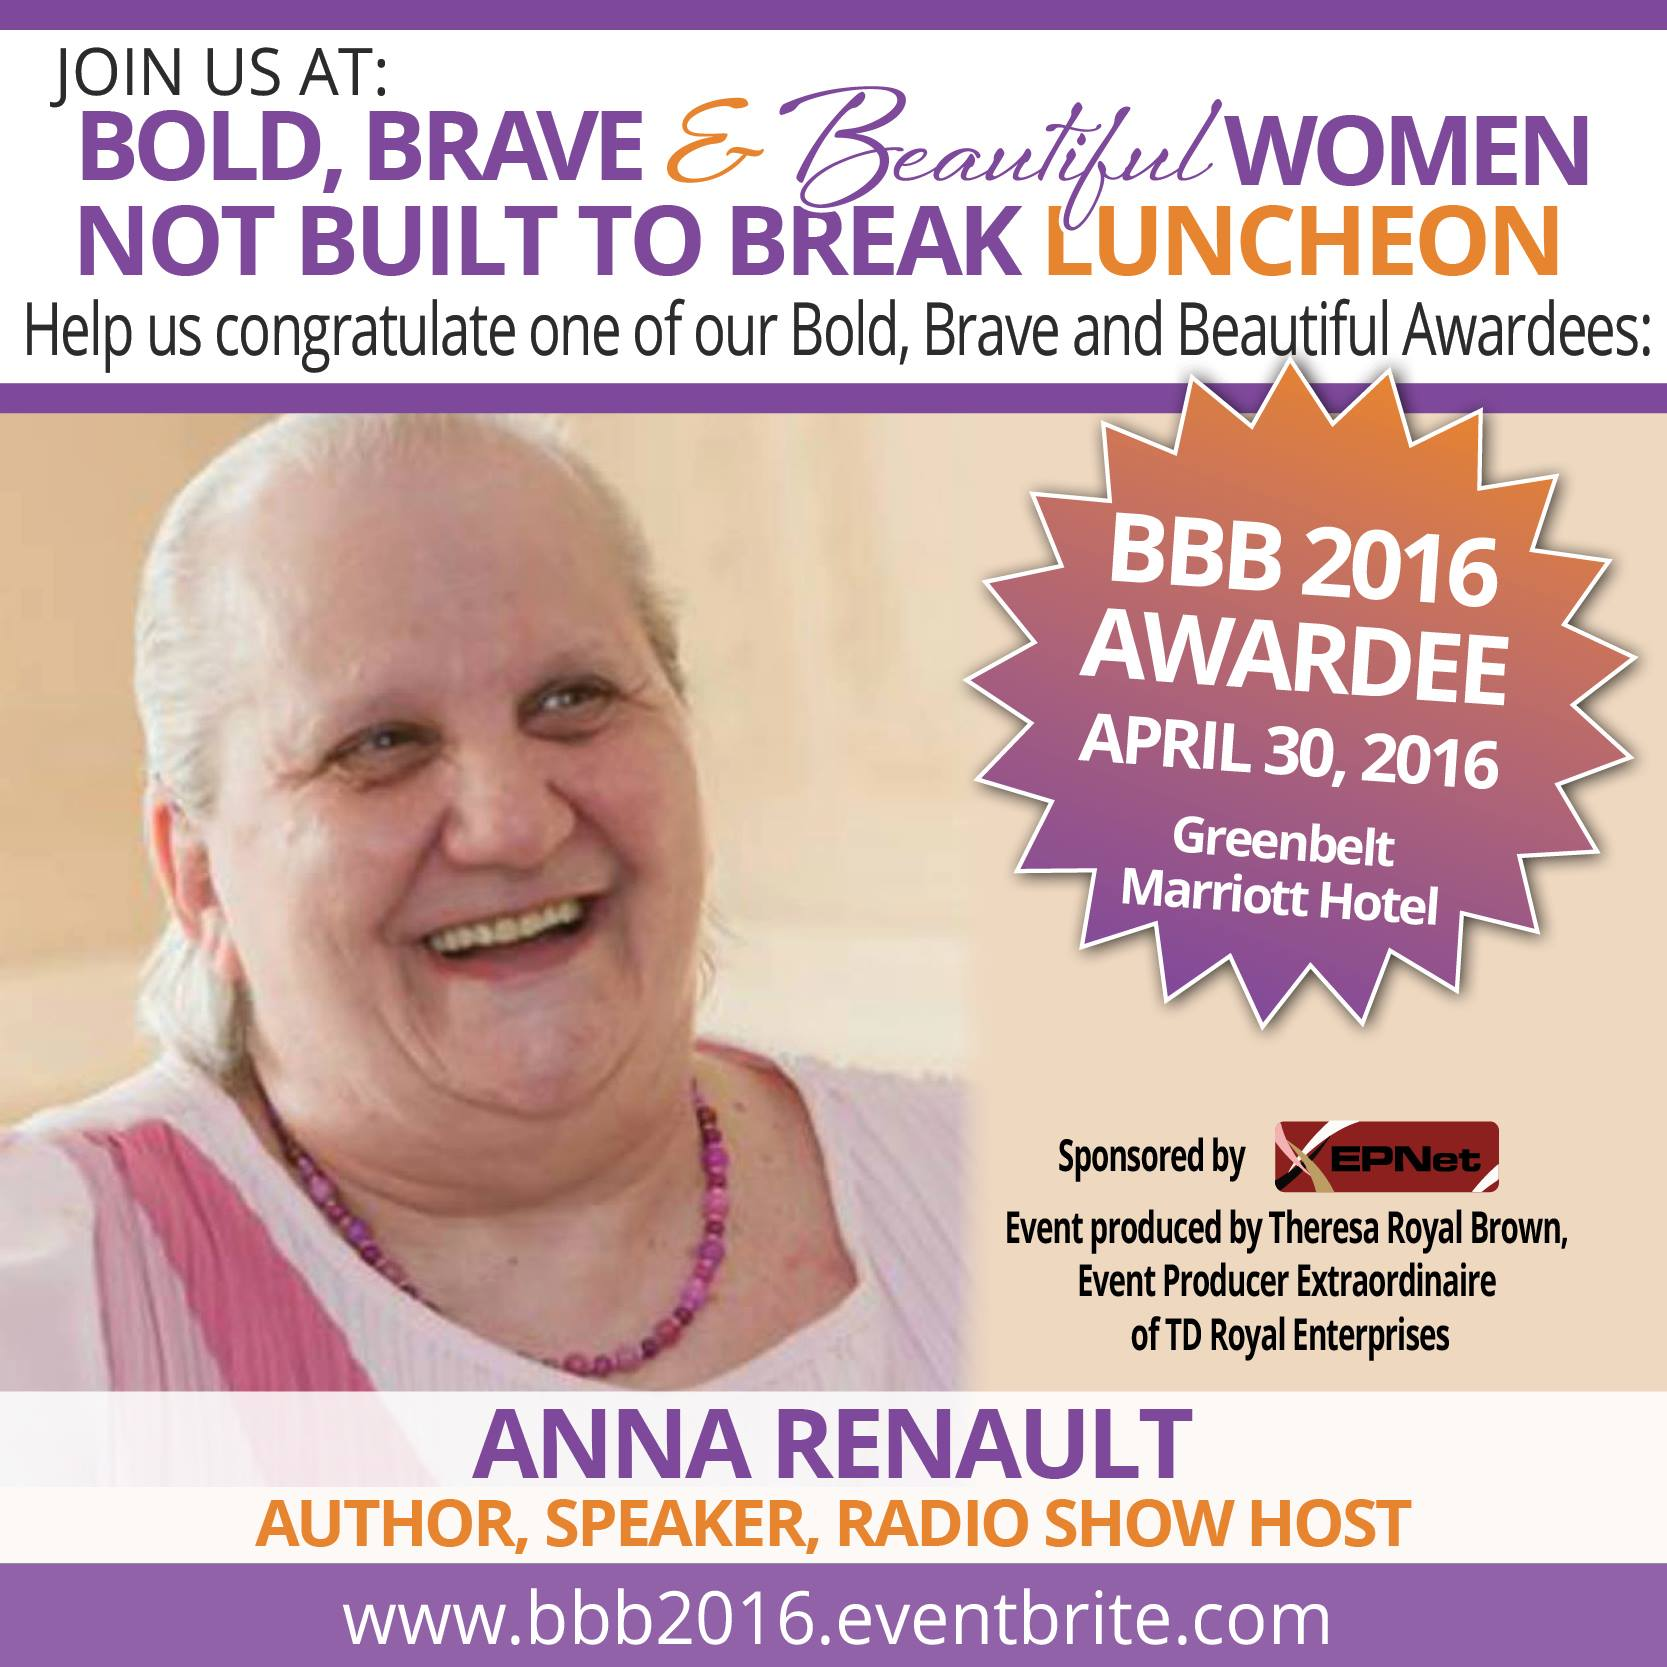 Anna Renault - BBB Awardee